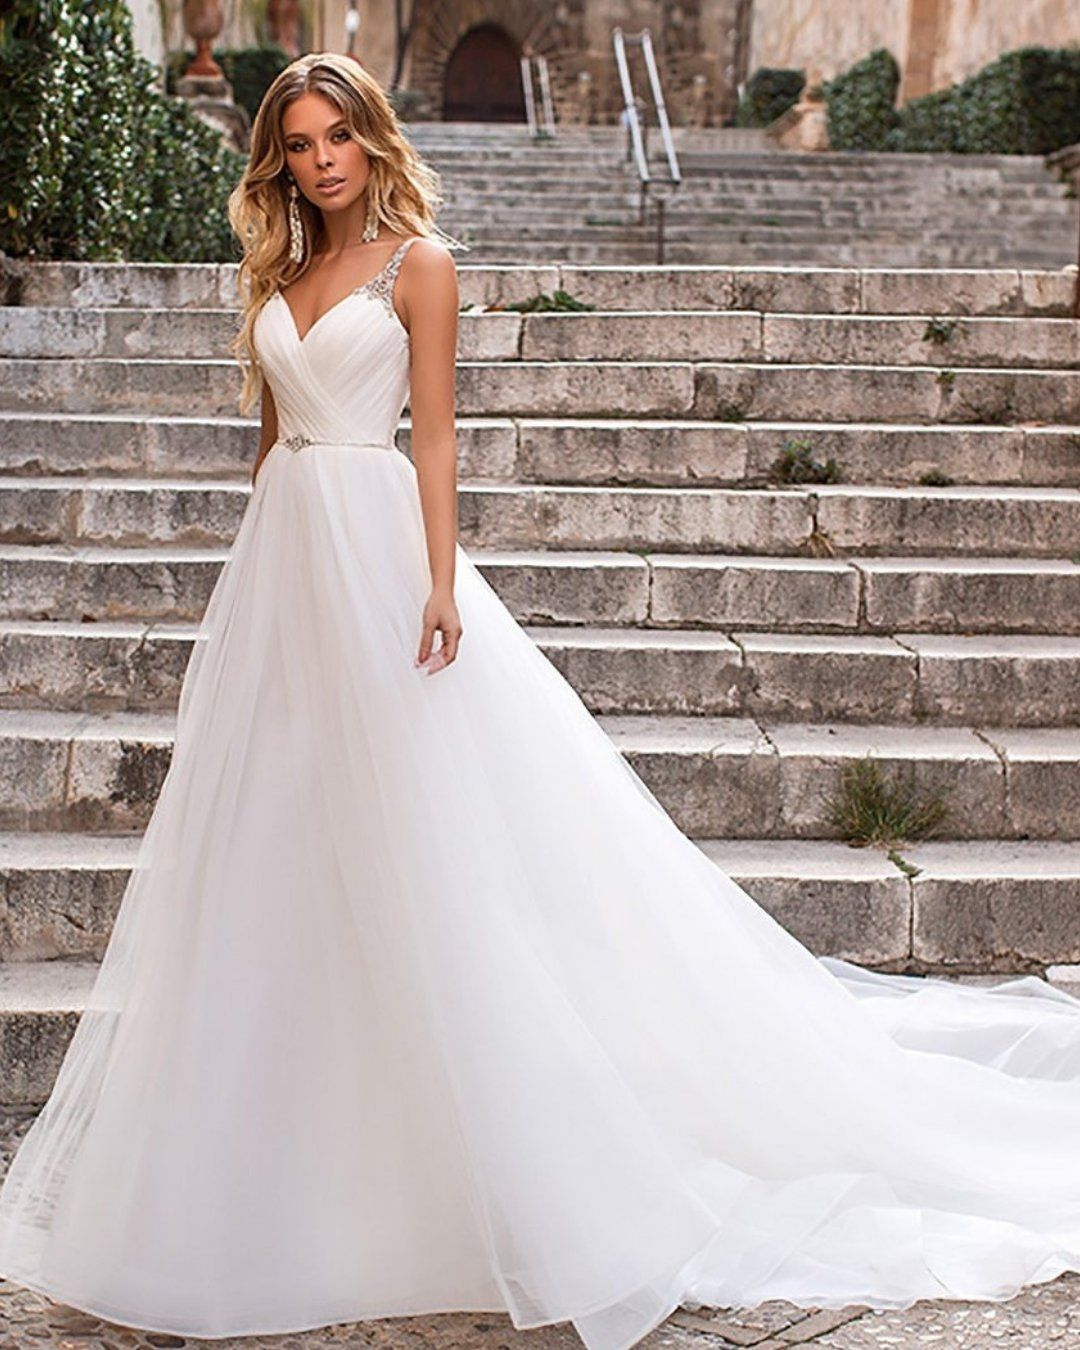 Classic White Wedding Dress Is Always A Safe Bet Tag Your Girls To See If They Like This Wedding Dresses Crystal Wedding Dresses Wedding Dress Gallery